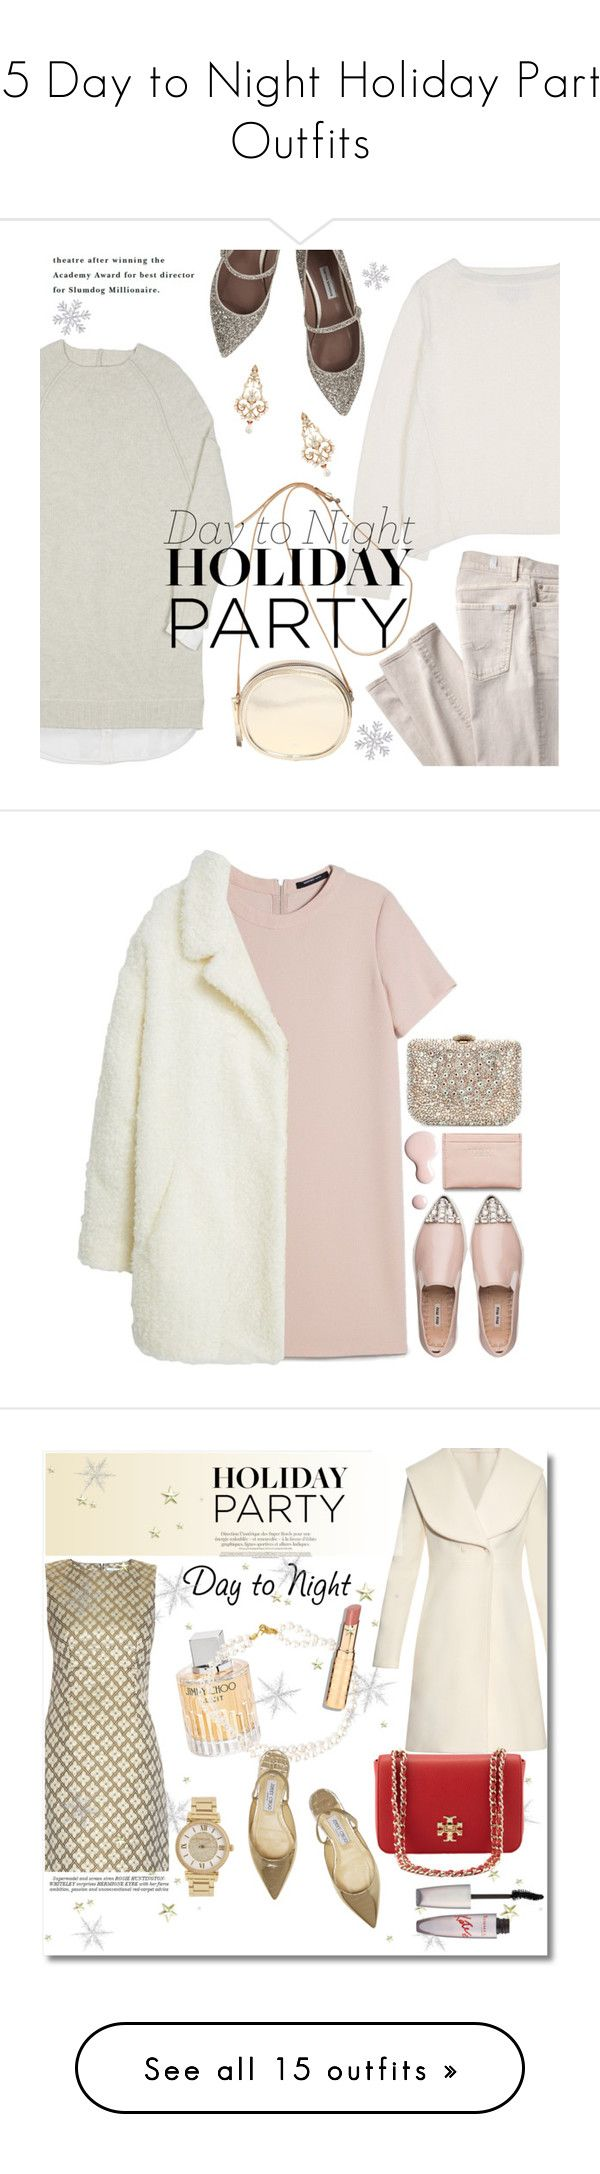 """""""15 Day to Night Holiday Party Outfits"""" by polyvore-editorial ❤ liked on Polyvore featuring DayToNight, waystowear, 7 For All Mankind, Brochu Walker, N°21, Tabitha Simmons, Diego Percossi Papi, MANGO, Miu Miu and Rodo"""